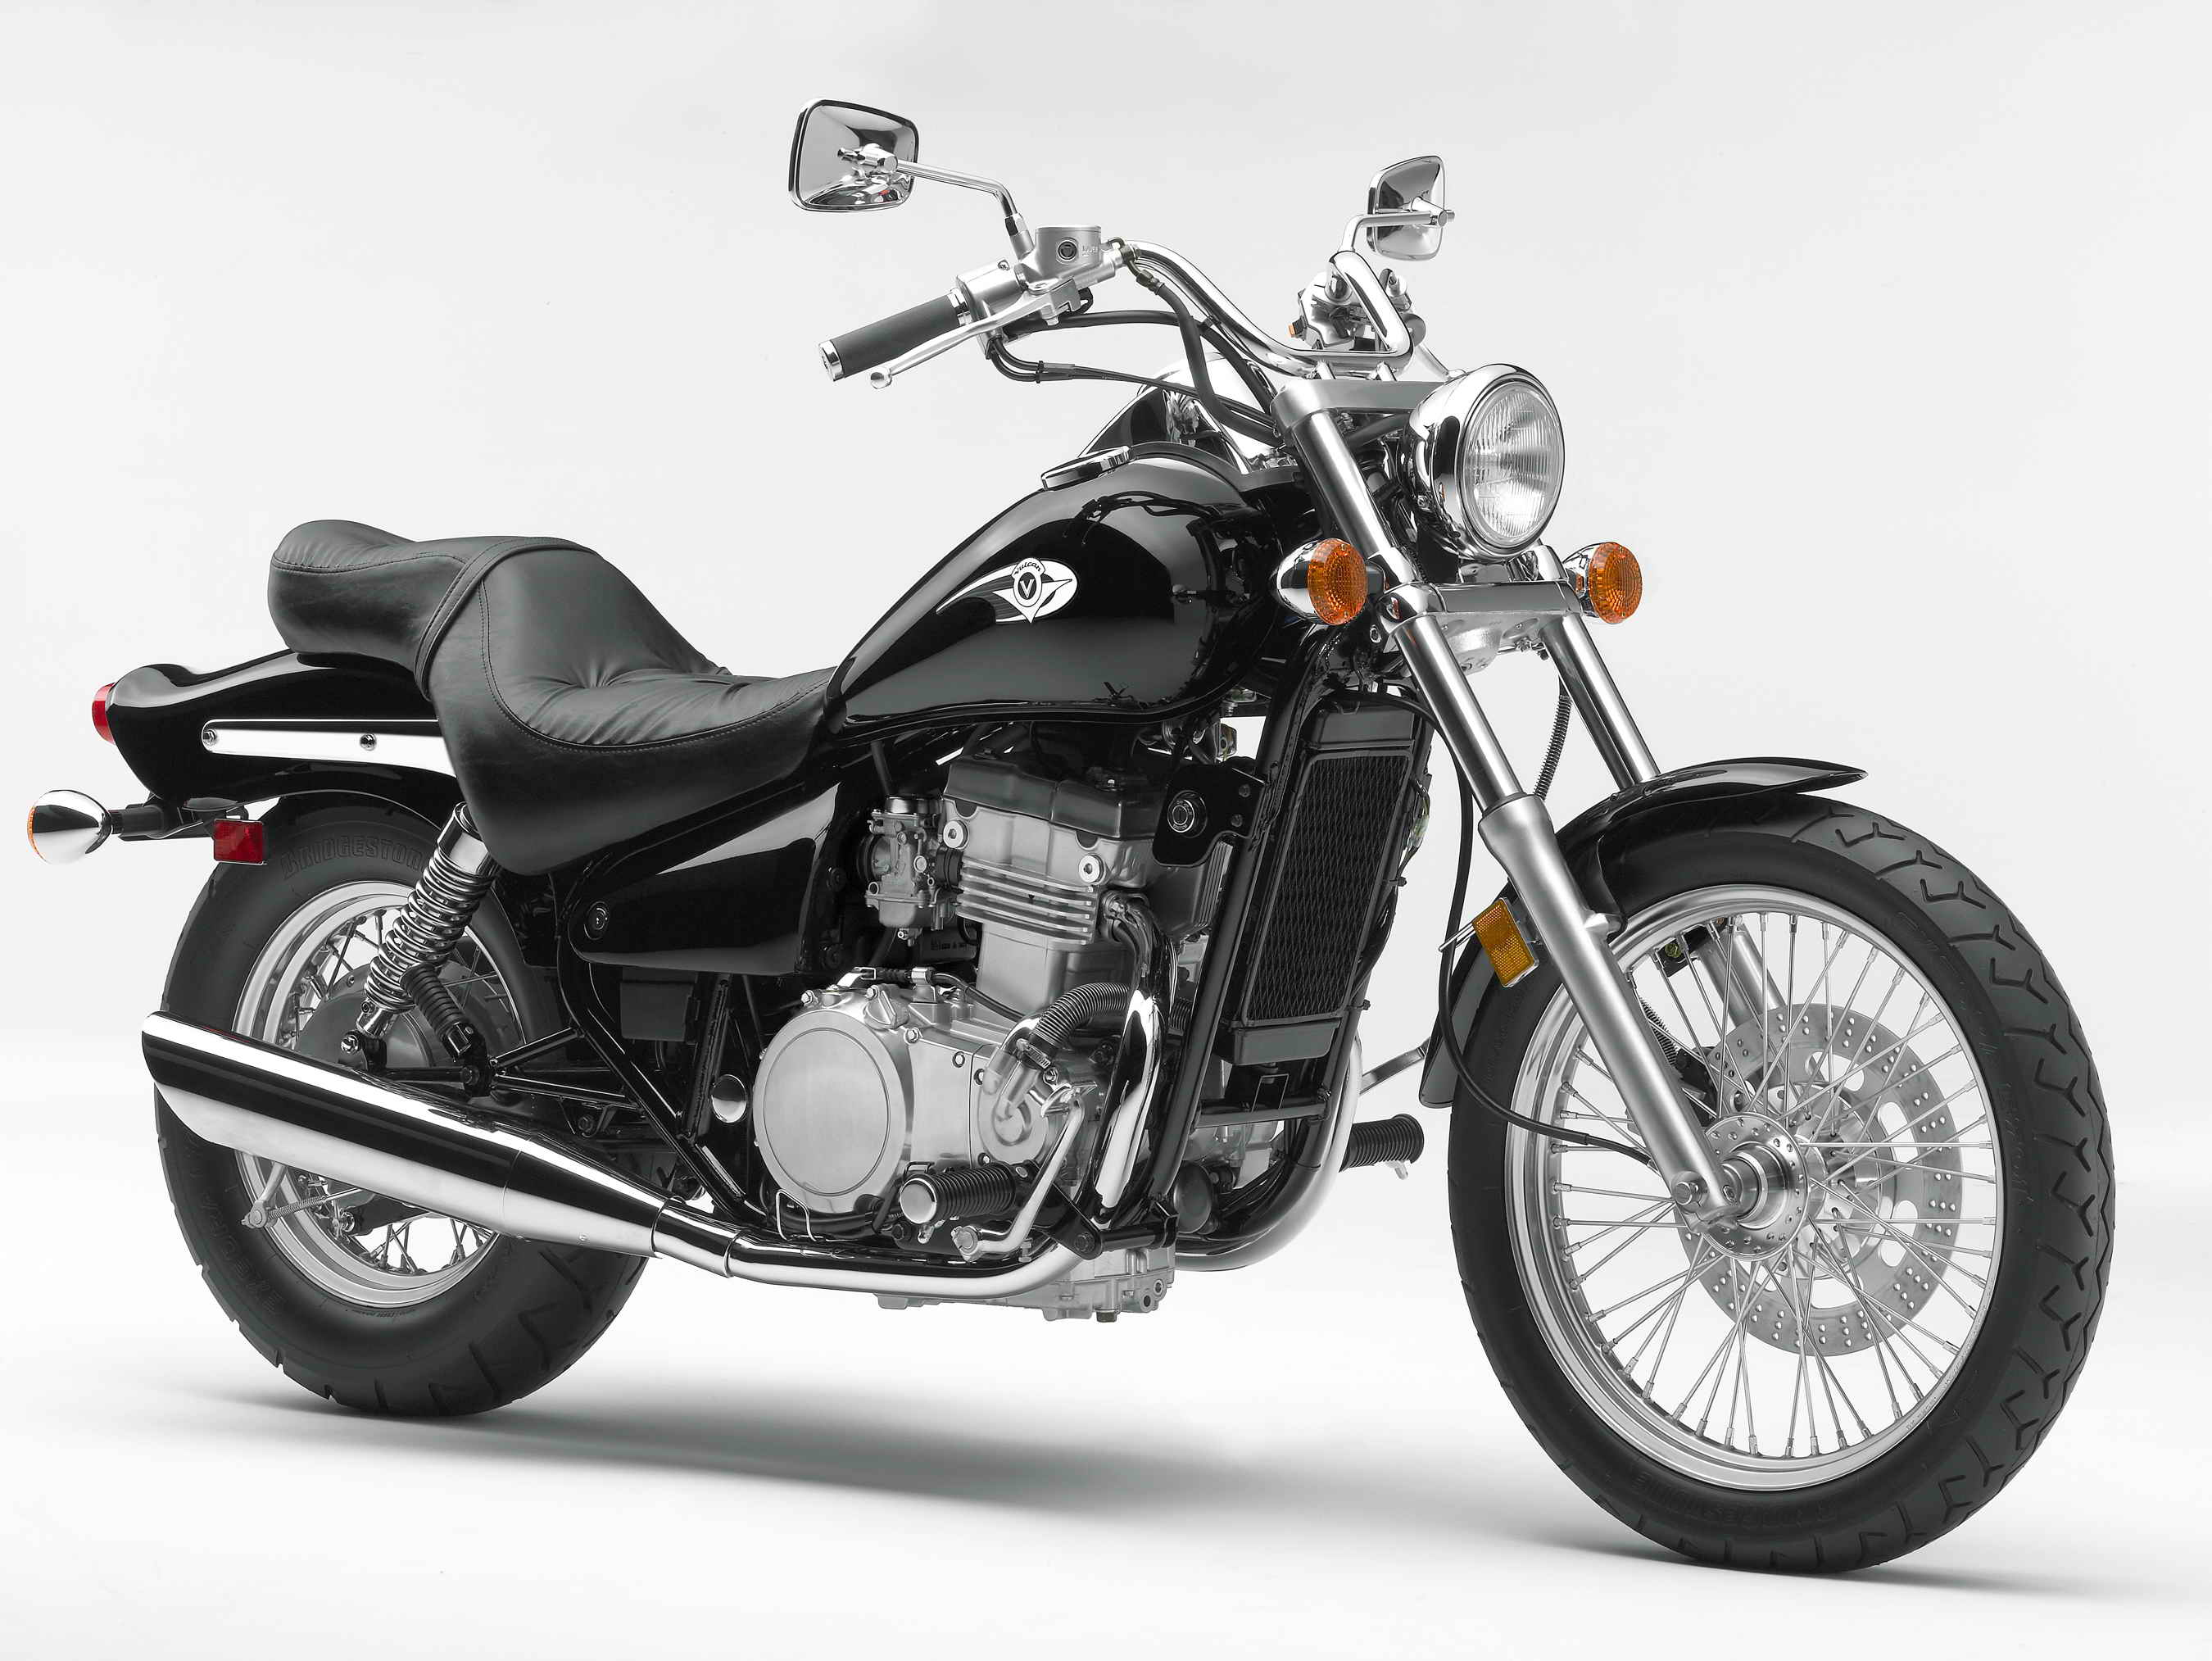 2007 kawasaki vulcan 500 ltd top speed. Black Bedroom Furniture Sets. Home Design Ideas